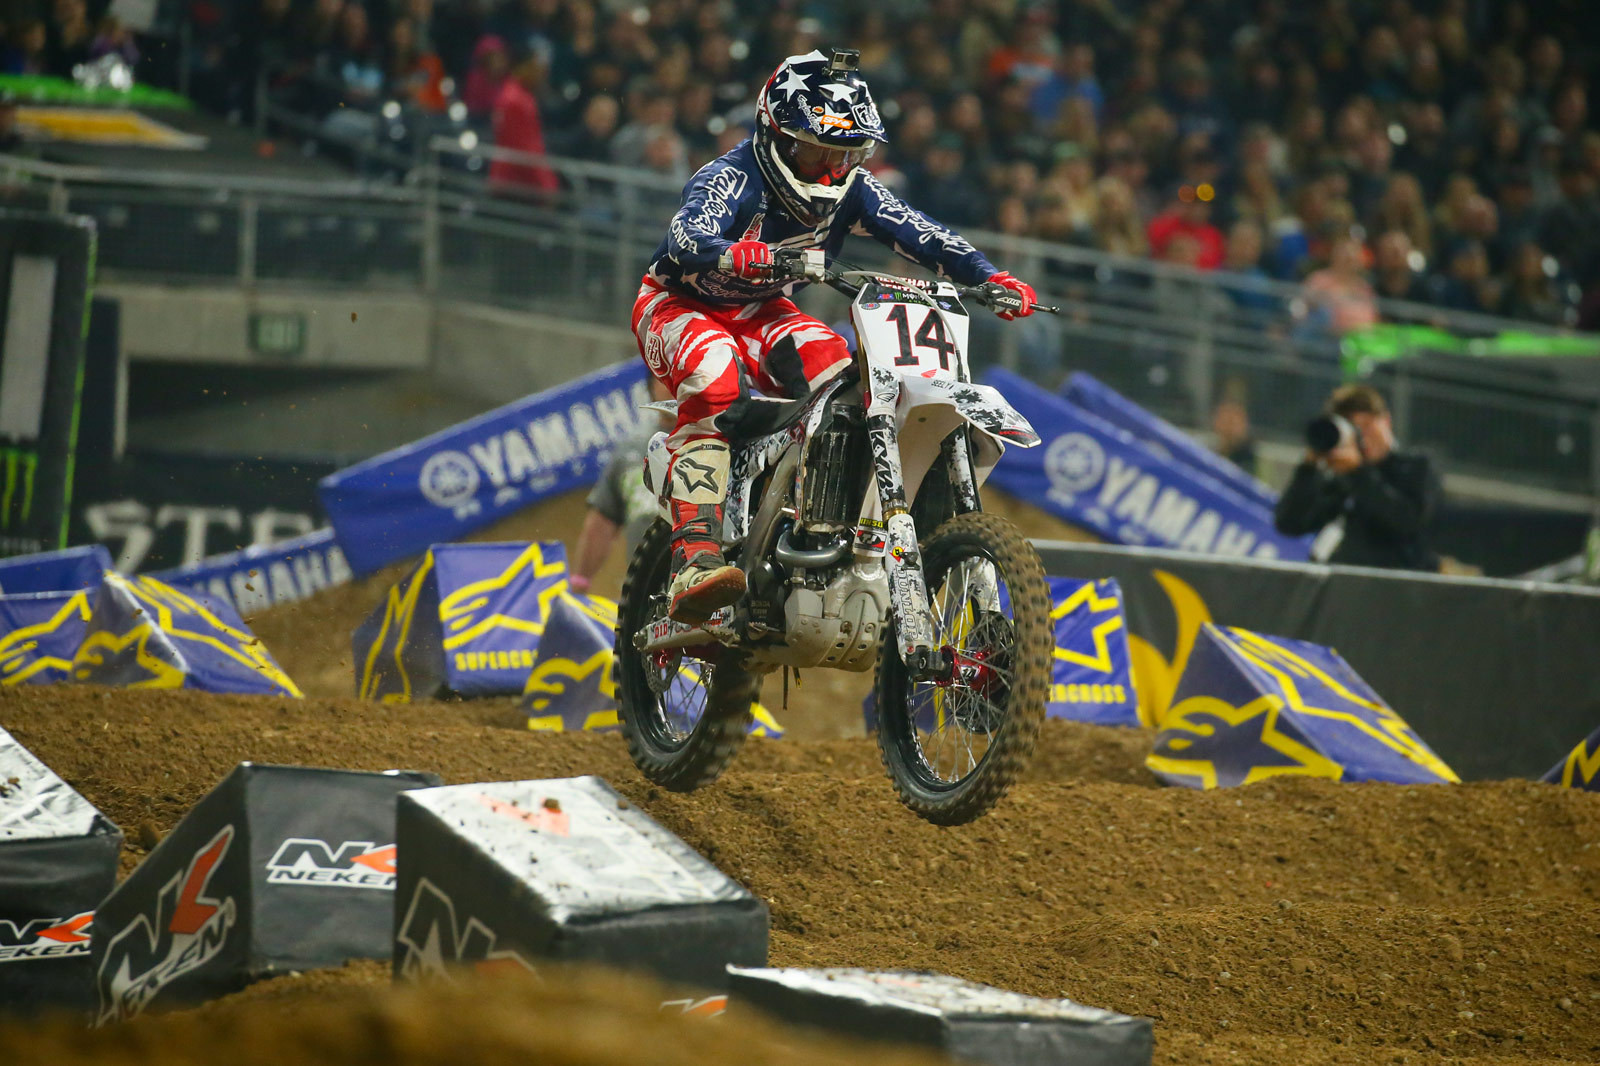 2016 San Diego Supercross